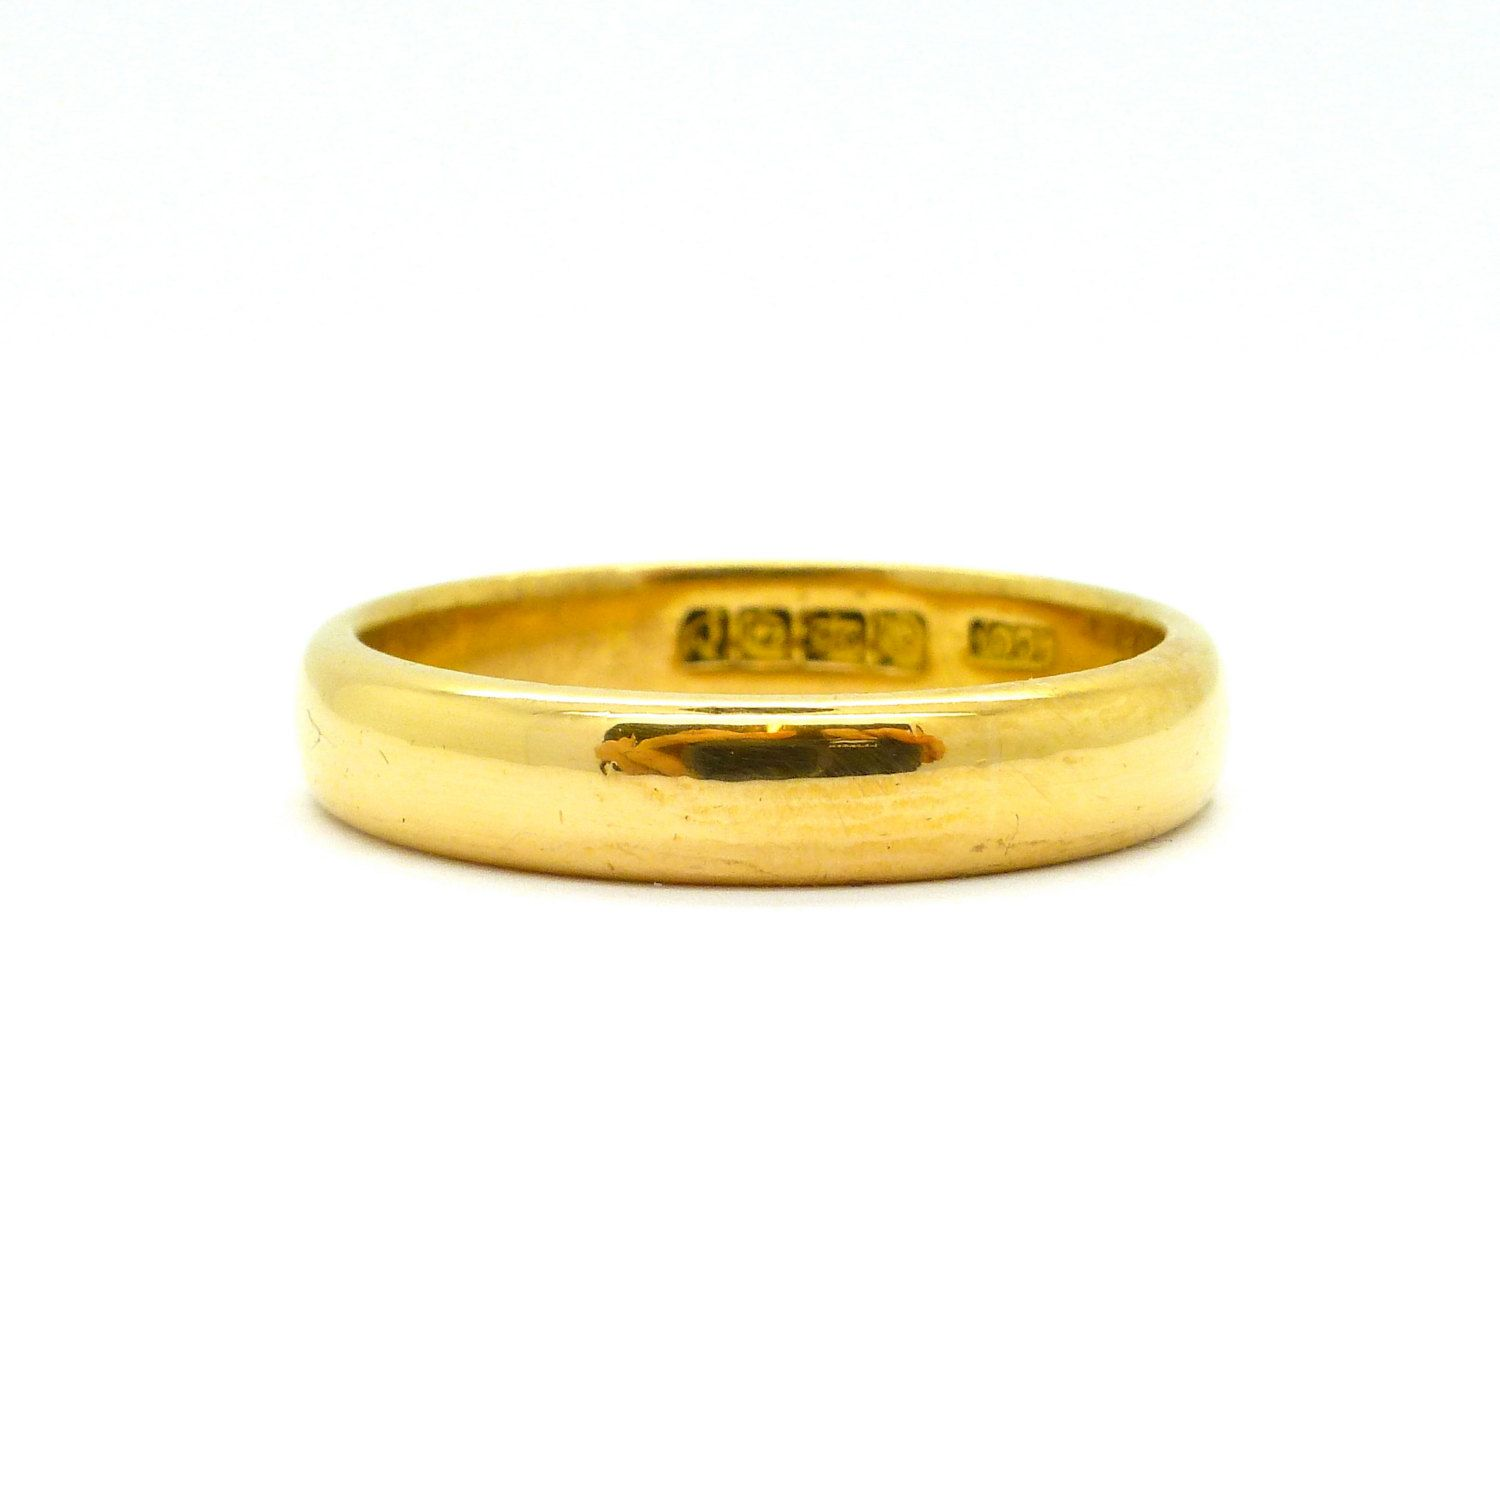 ring bands yellow asp wedding to mens band jewelrydetail dome enlarge solid click plain huge gold